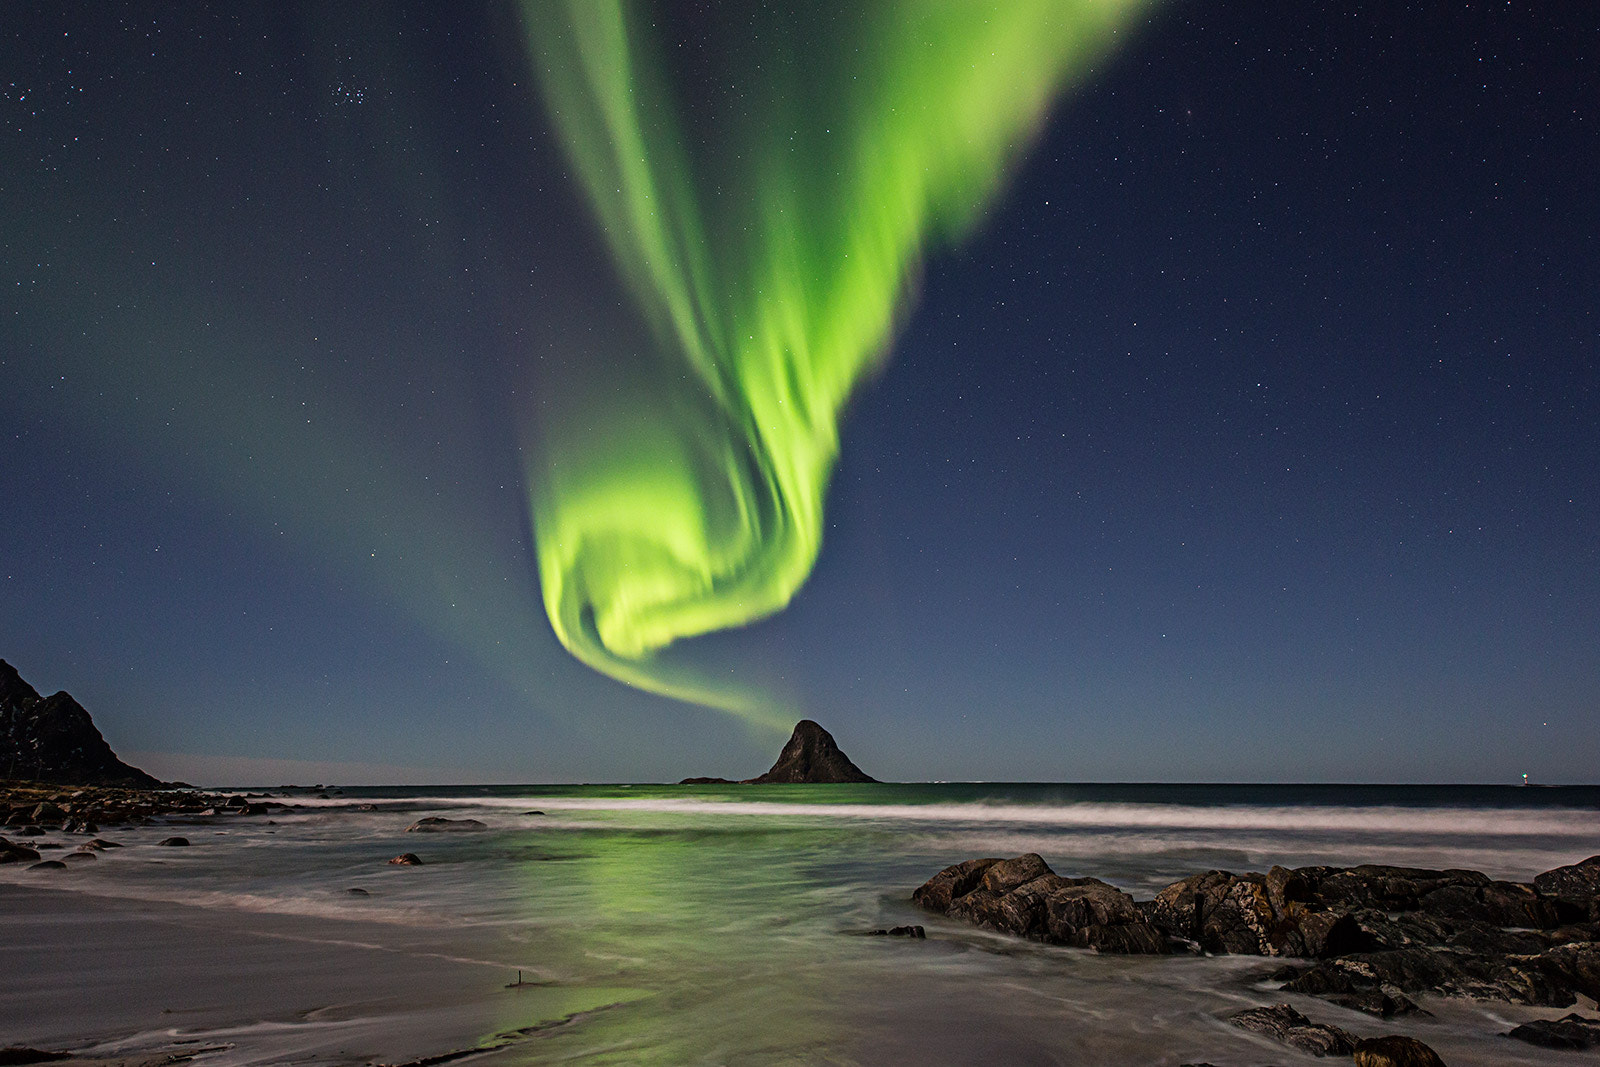 Photograph Green smoke by Frank Olsen on 500px